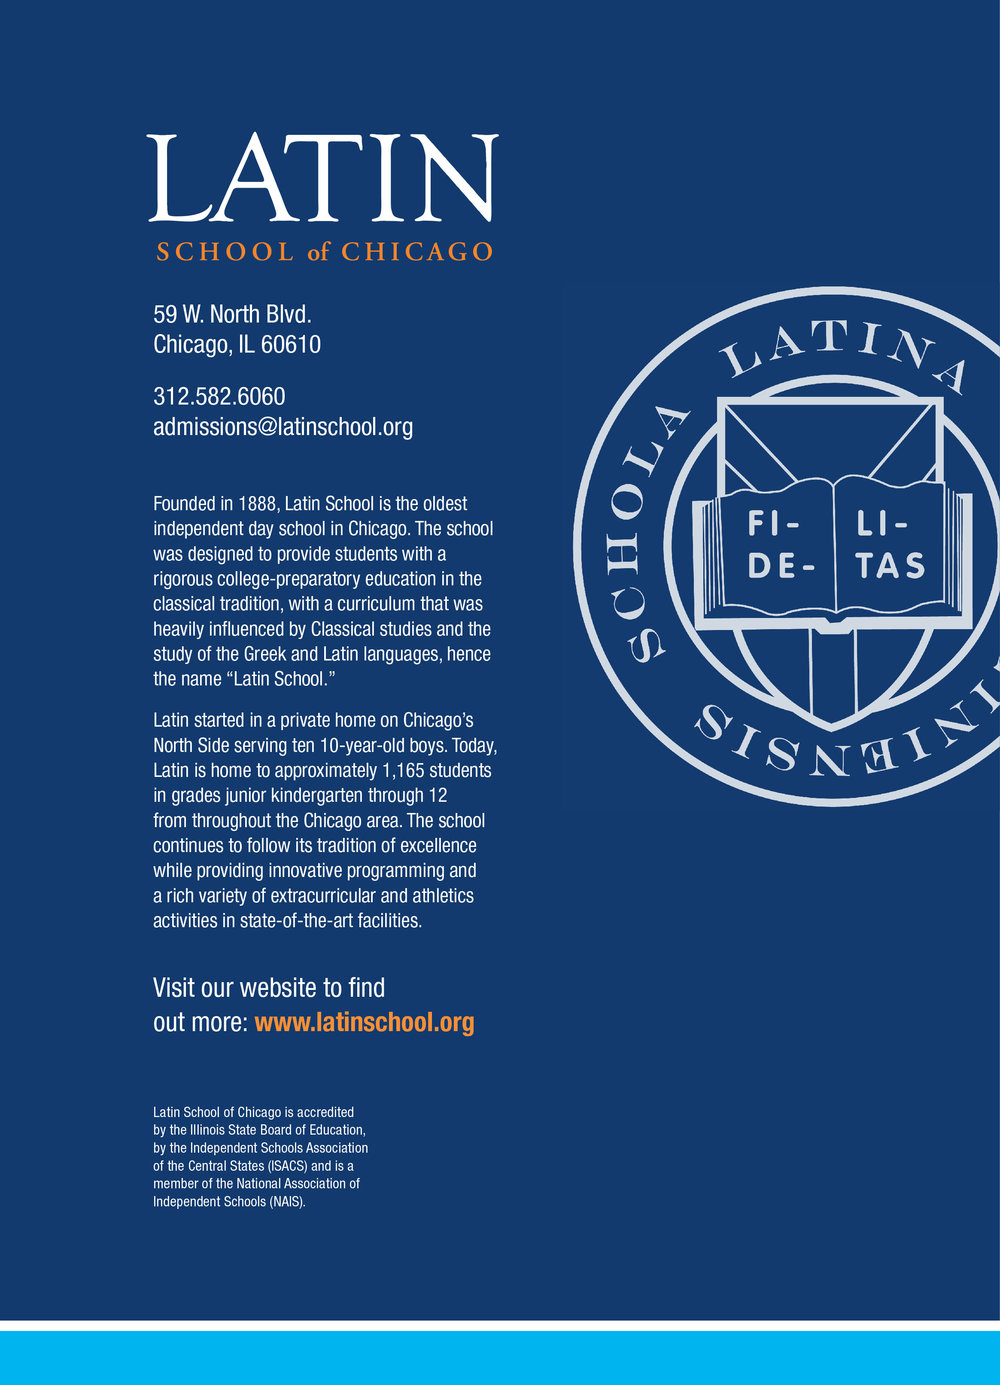 The back of the brochure features Latin's seal